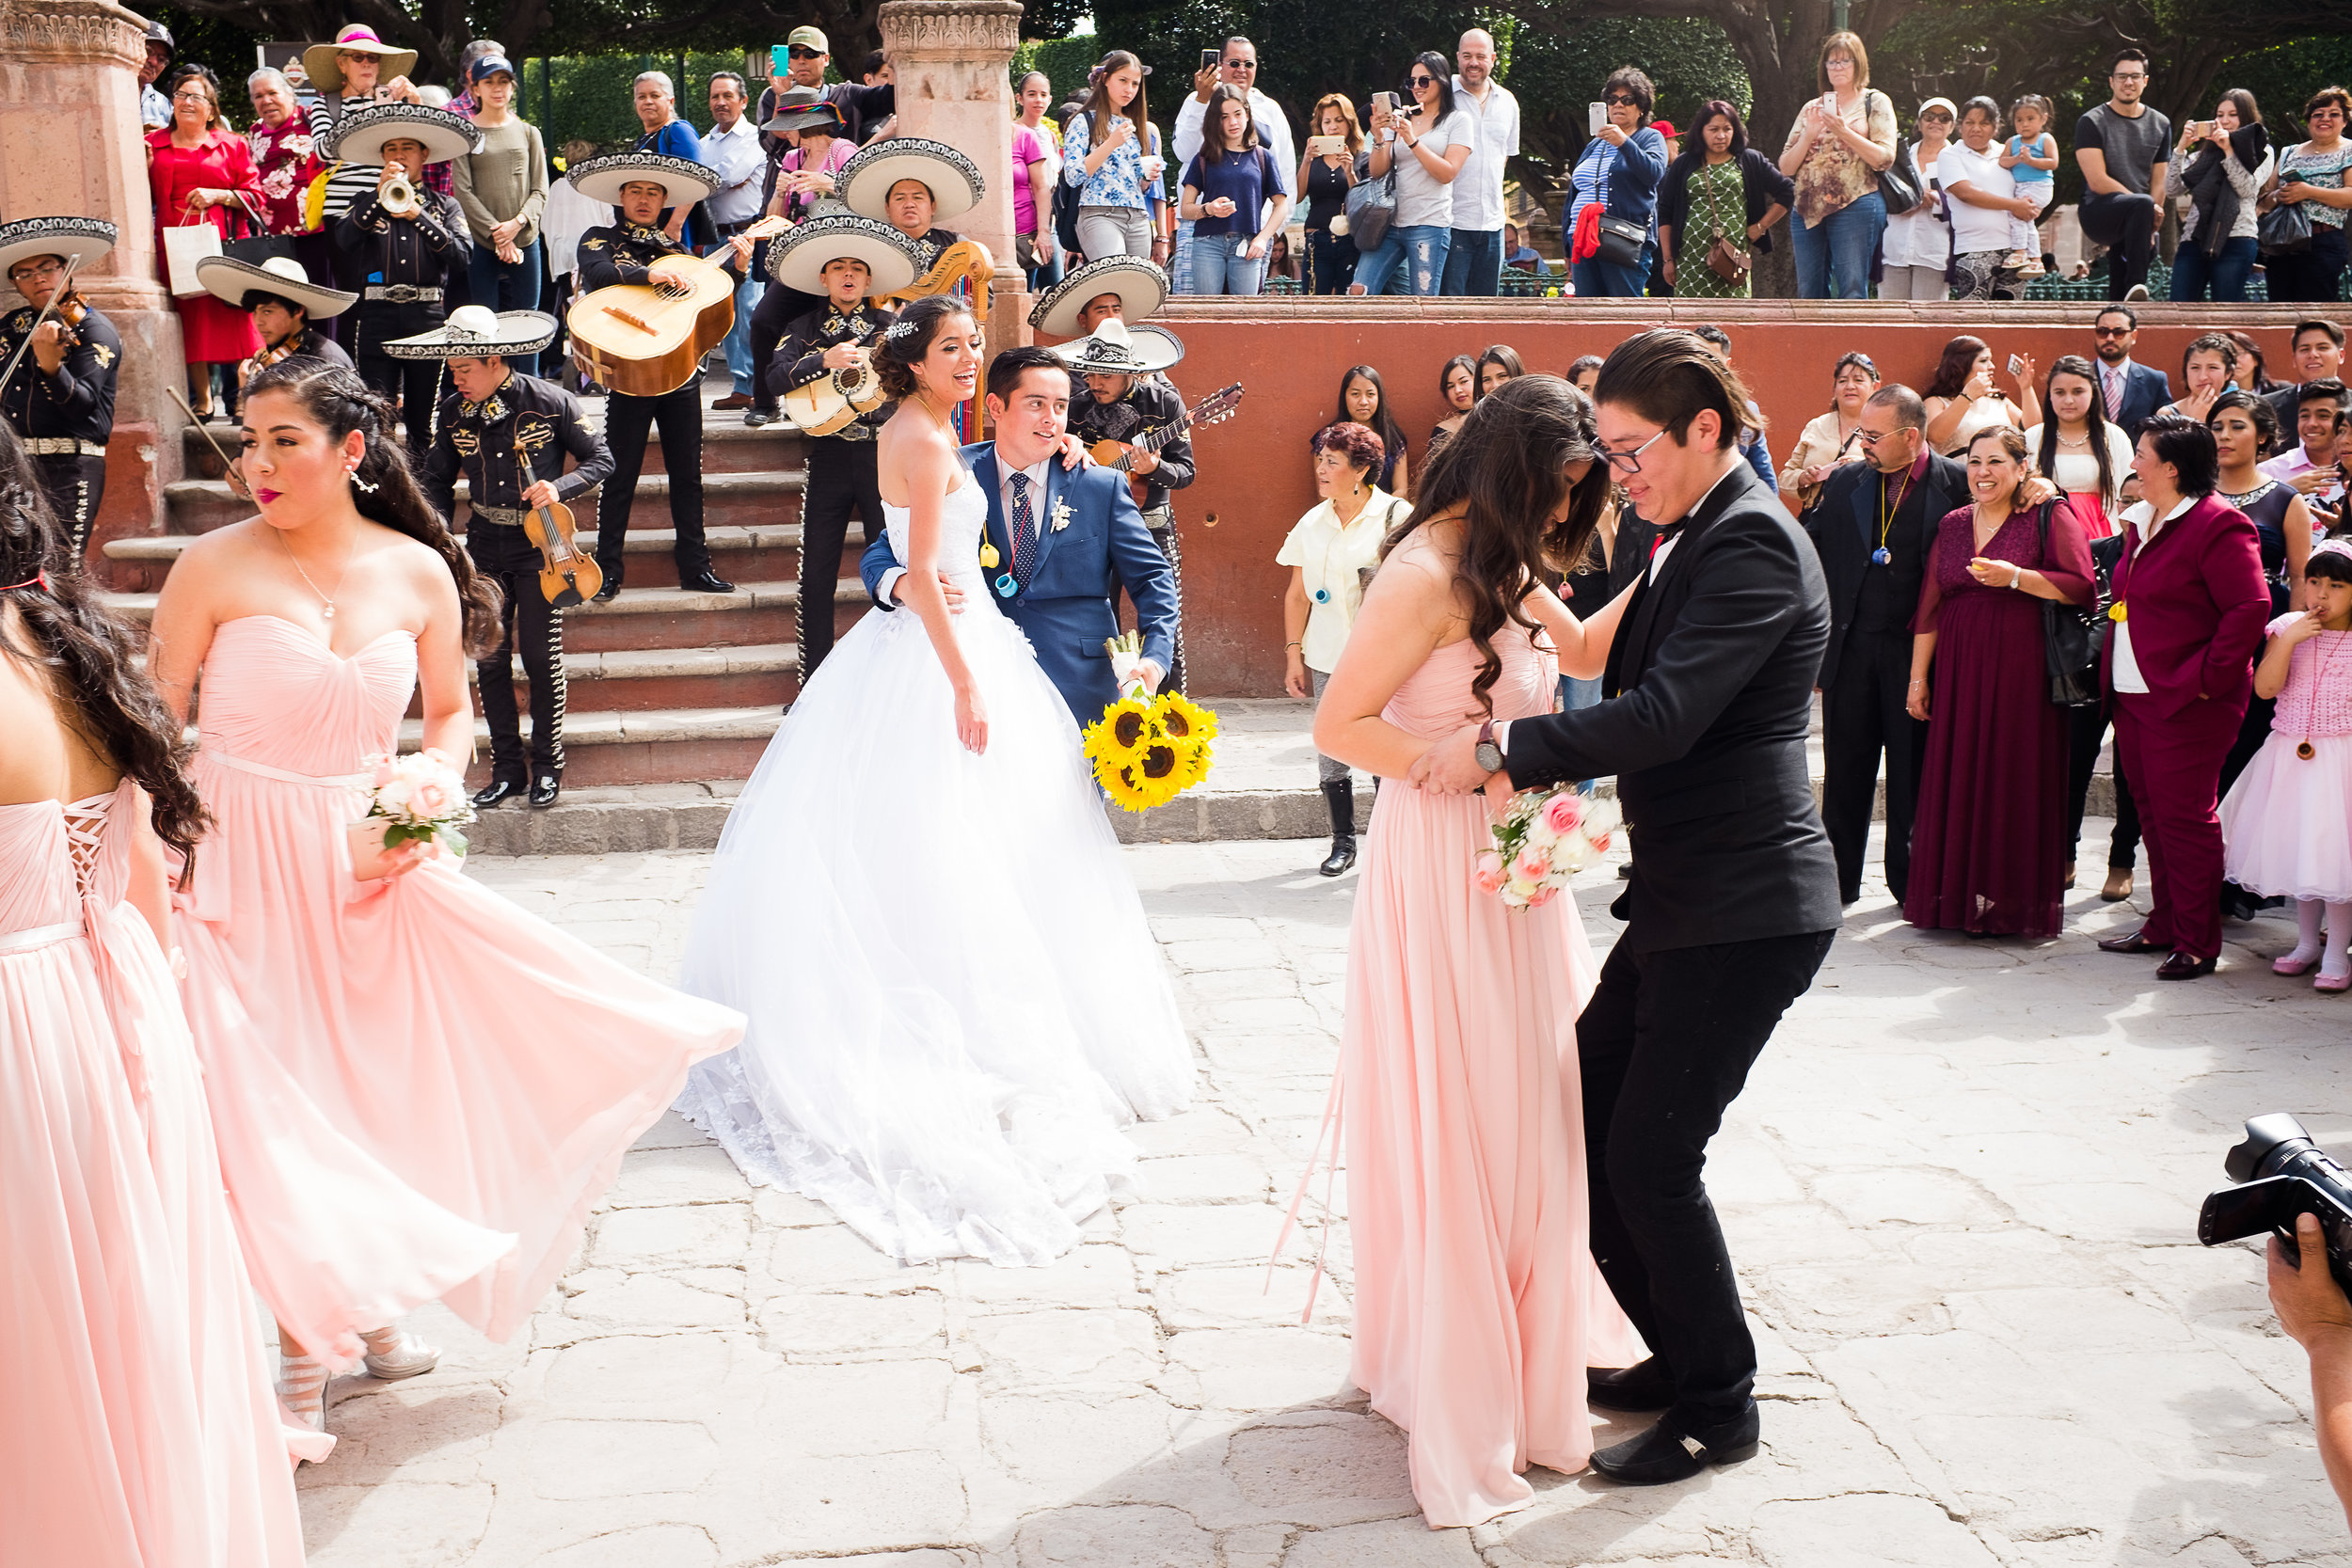 mexican-fine-art-wedding-traditions-donkey-mexico-karina-mora-prints-7.jpg